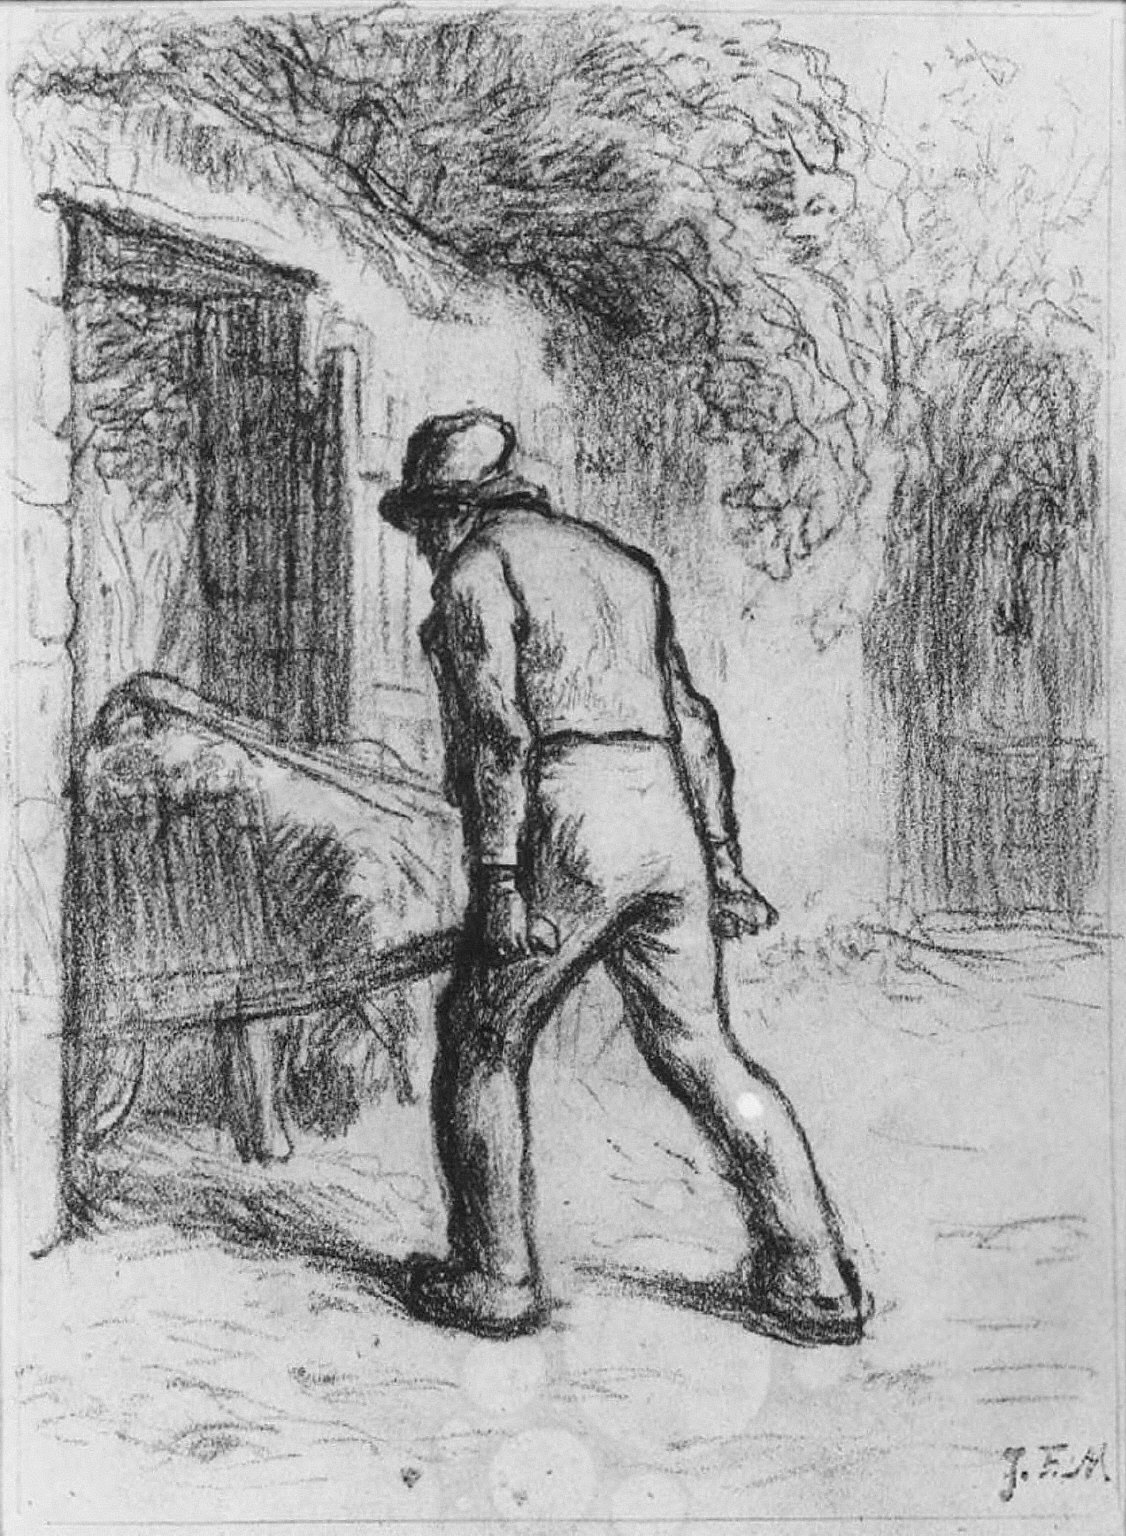 [Study for Man with a Wheelbarrow, Study for Man with a Wheelbarrow]